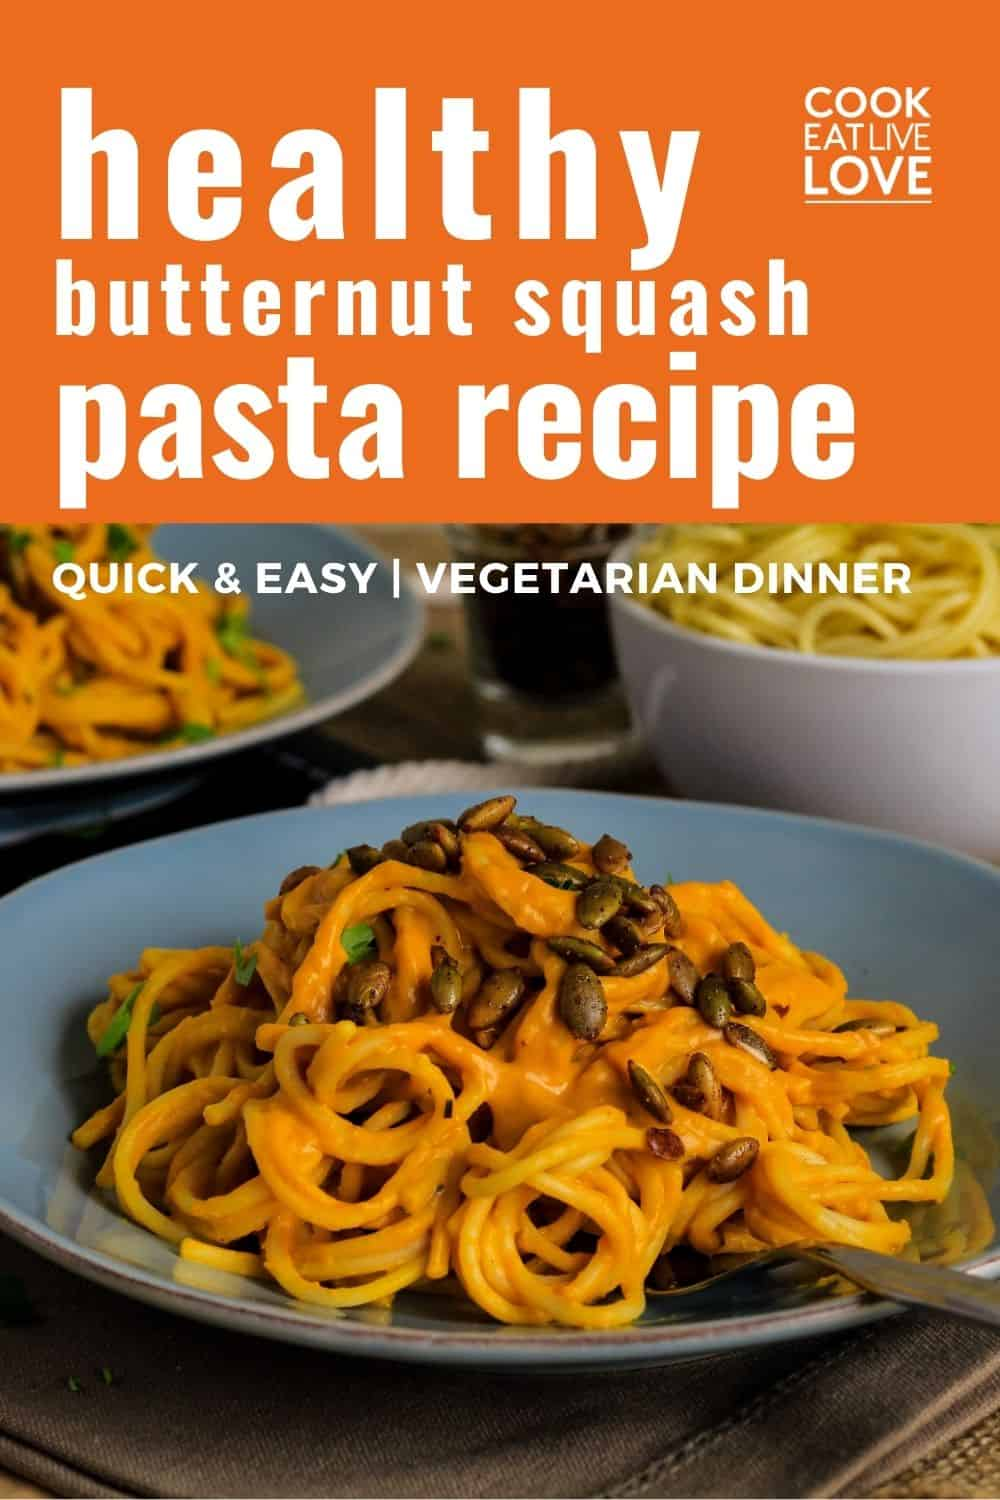 Pin for pinterest with front view of plate of butternut squash pasta.